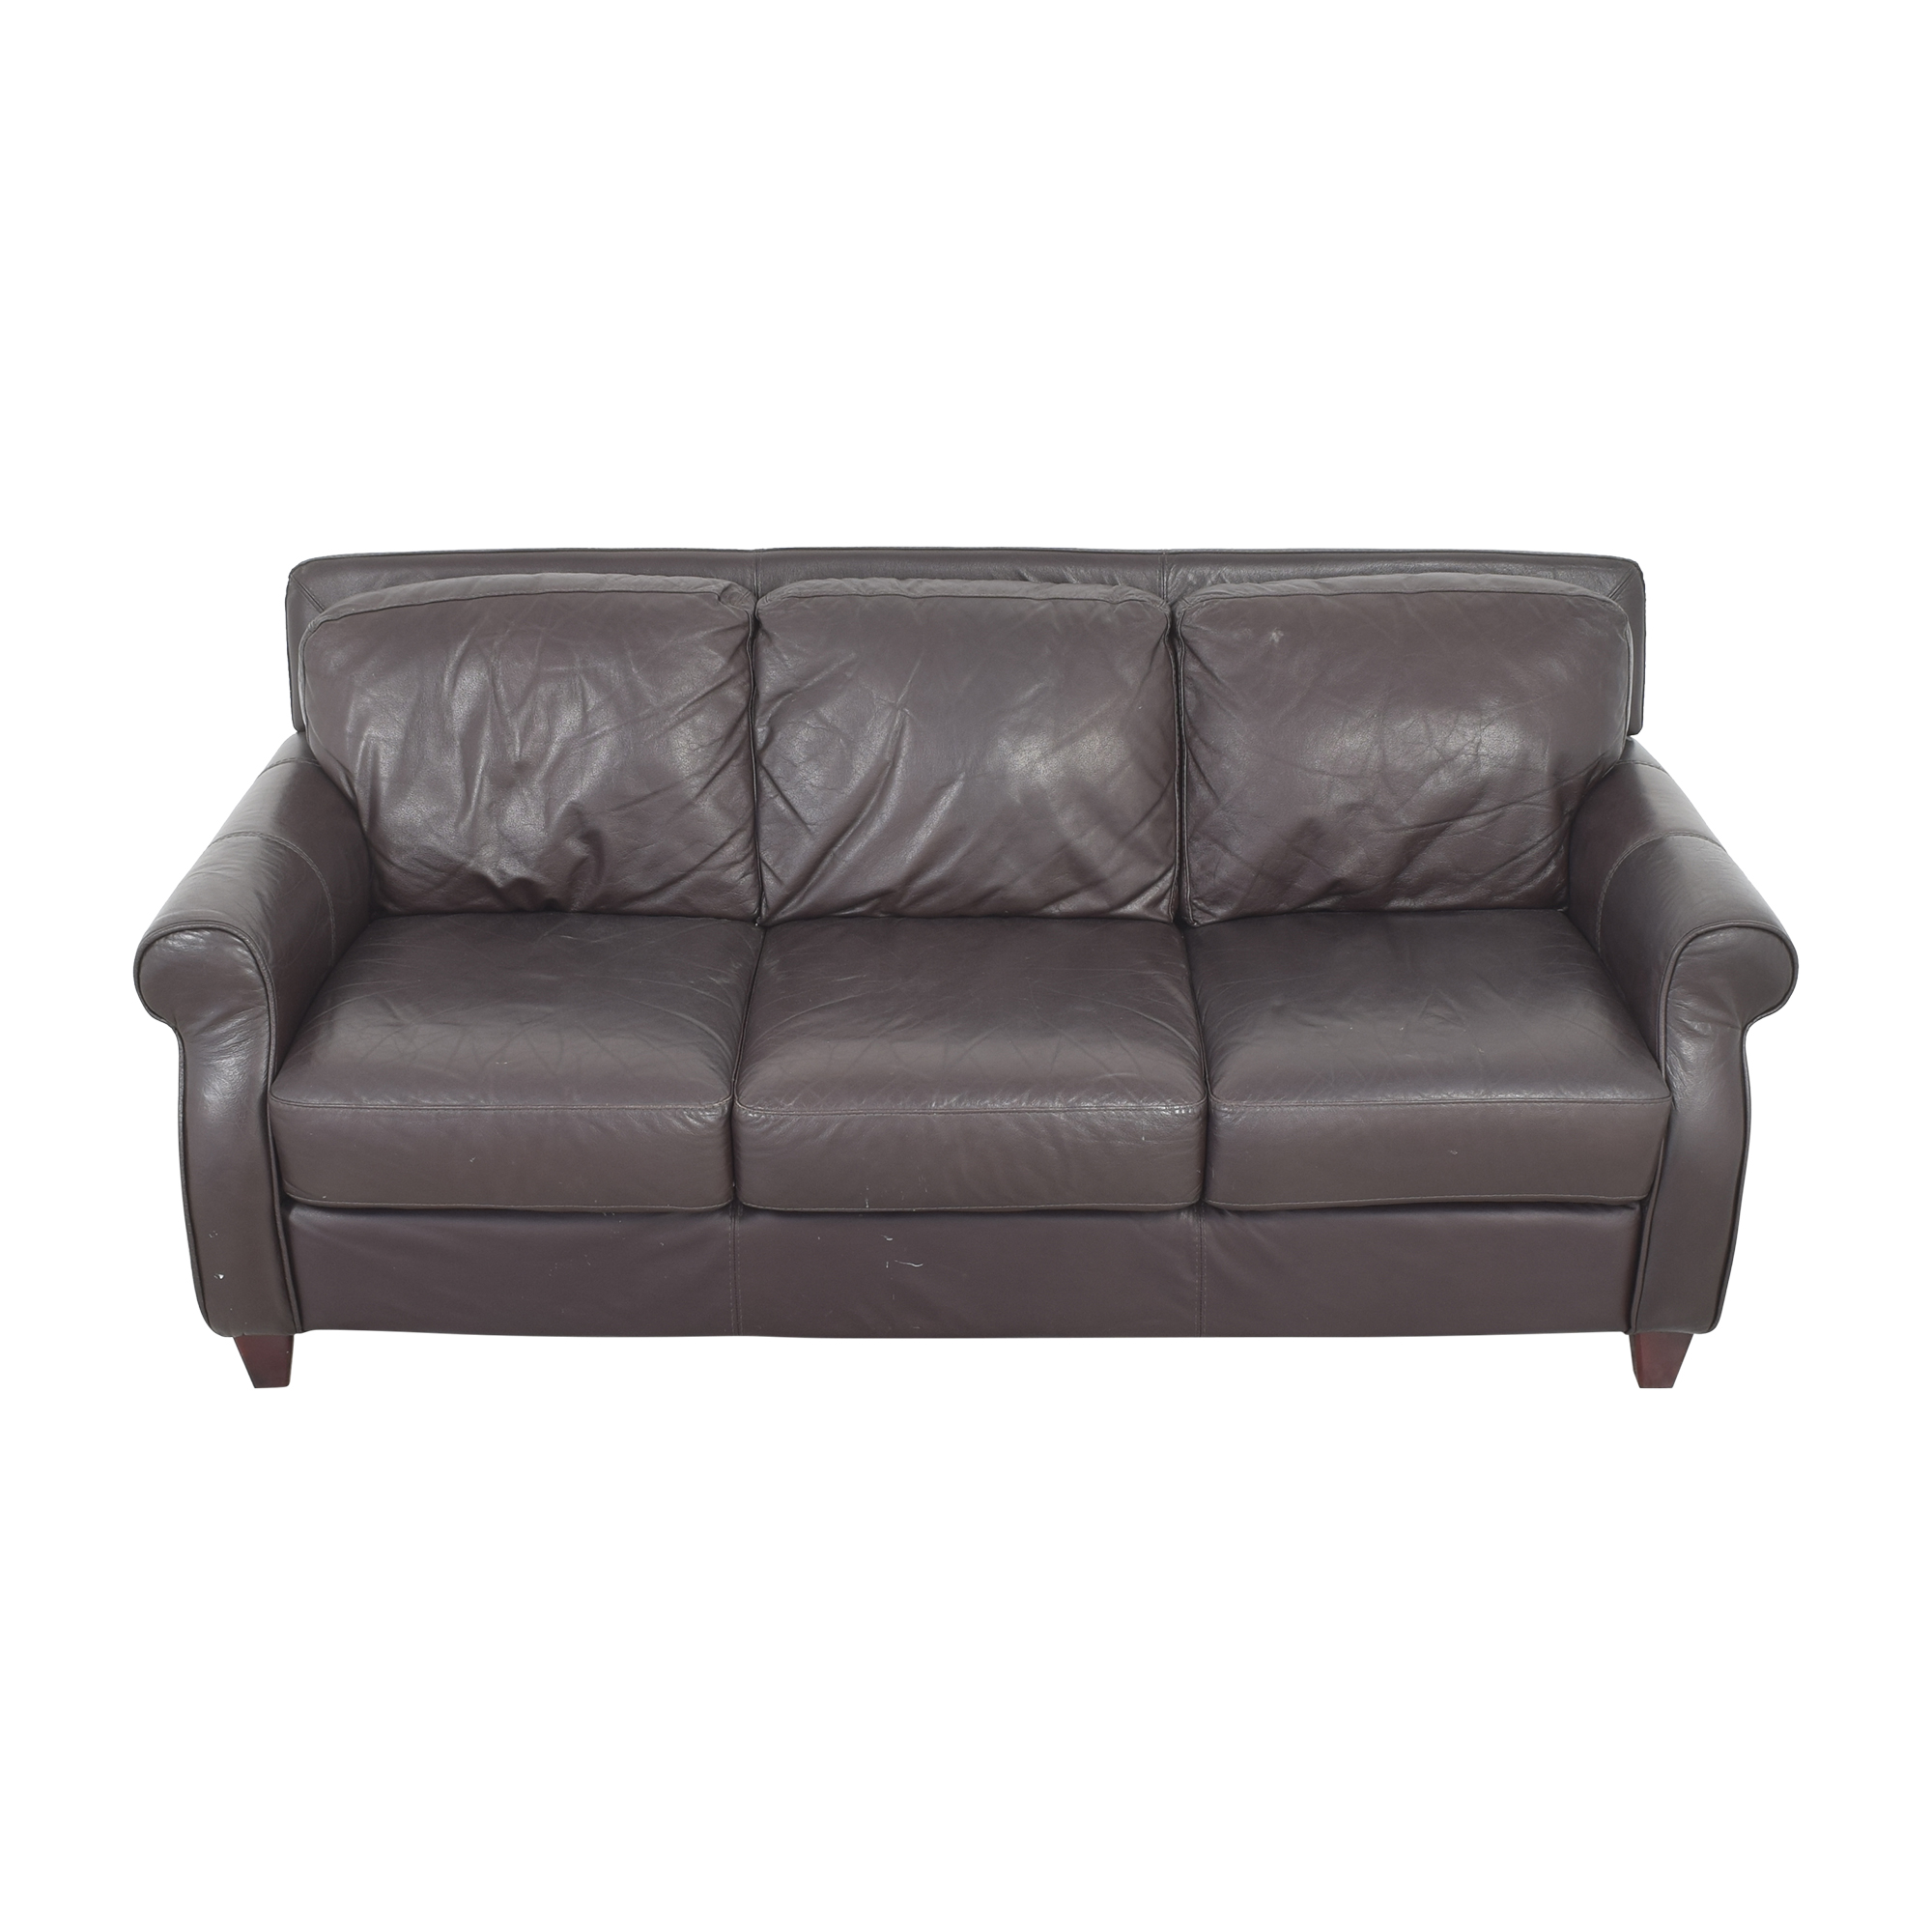 Raymour & Flanigan Raymour & Flanigan Roll Arm Sofa brown